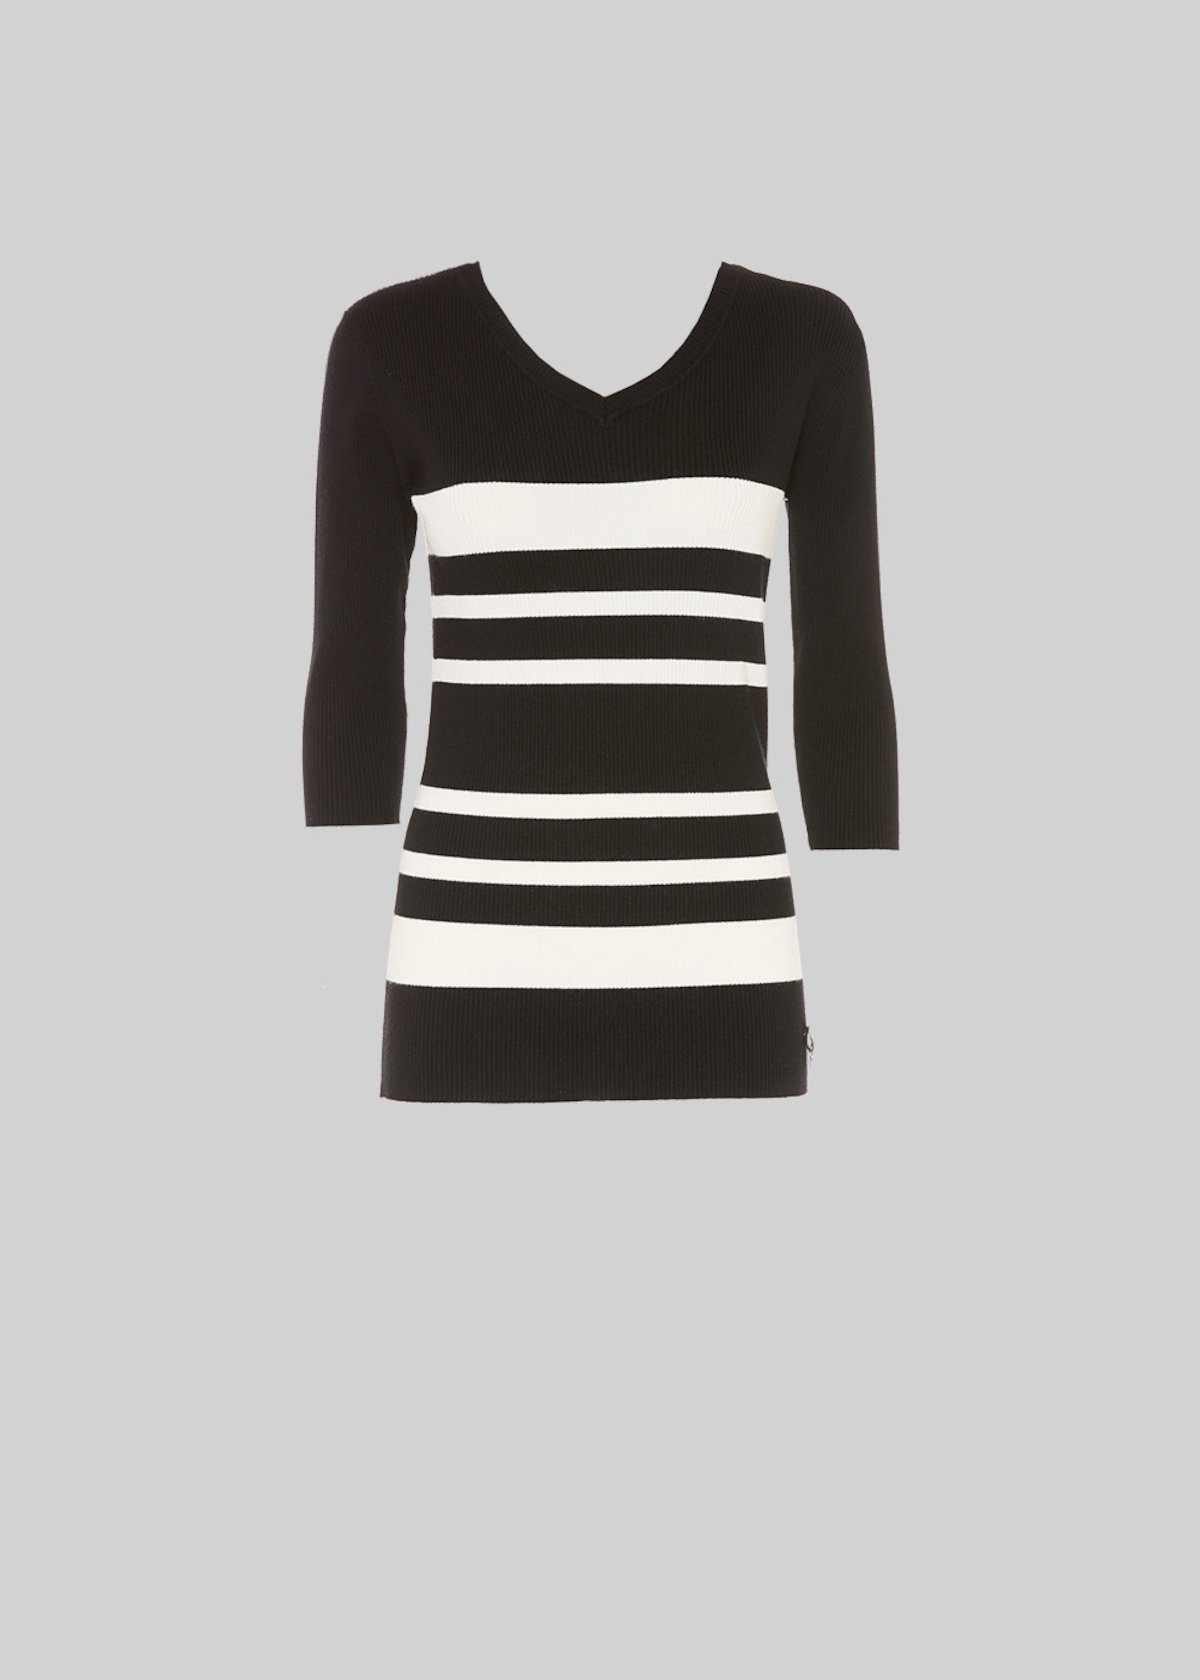 Maglia Michael stripe fantasy con scollo a V - Black / White Stripes